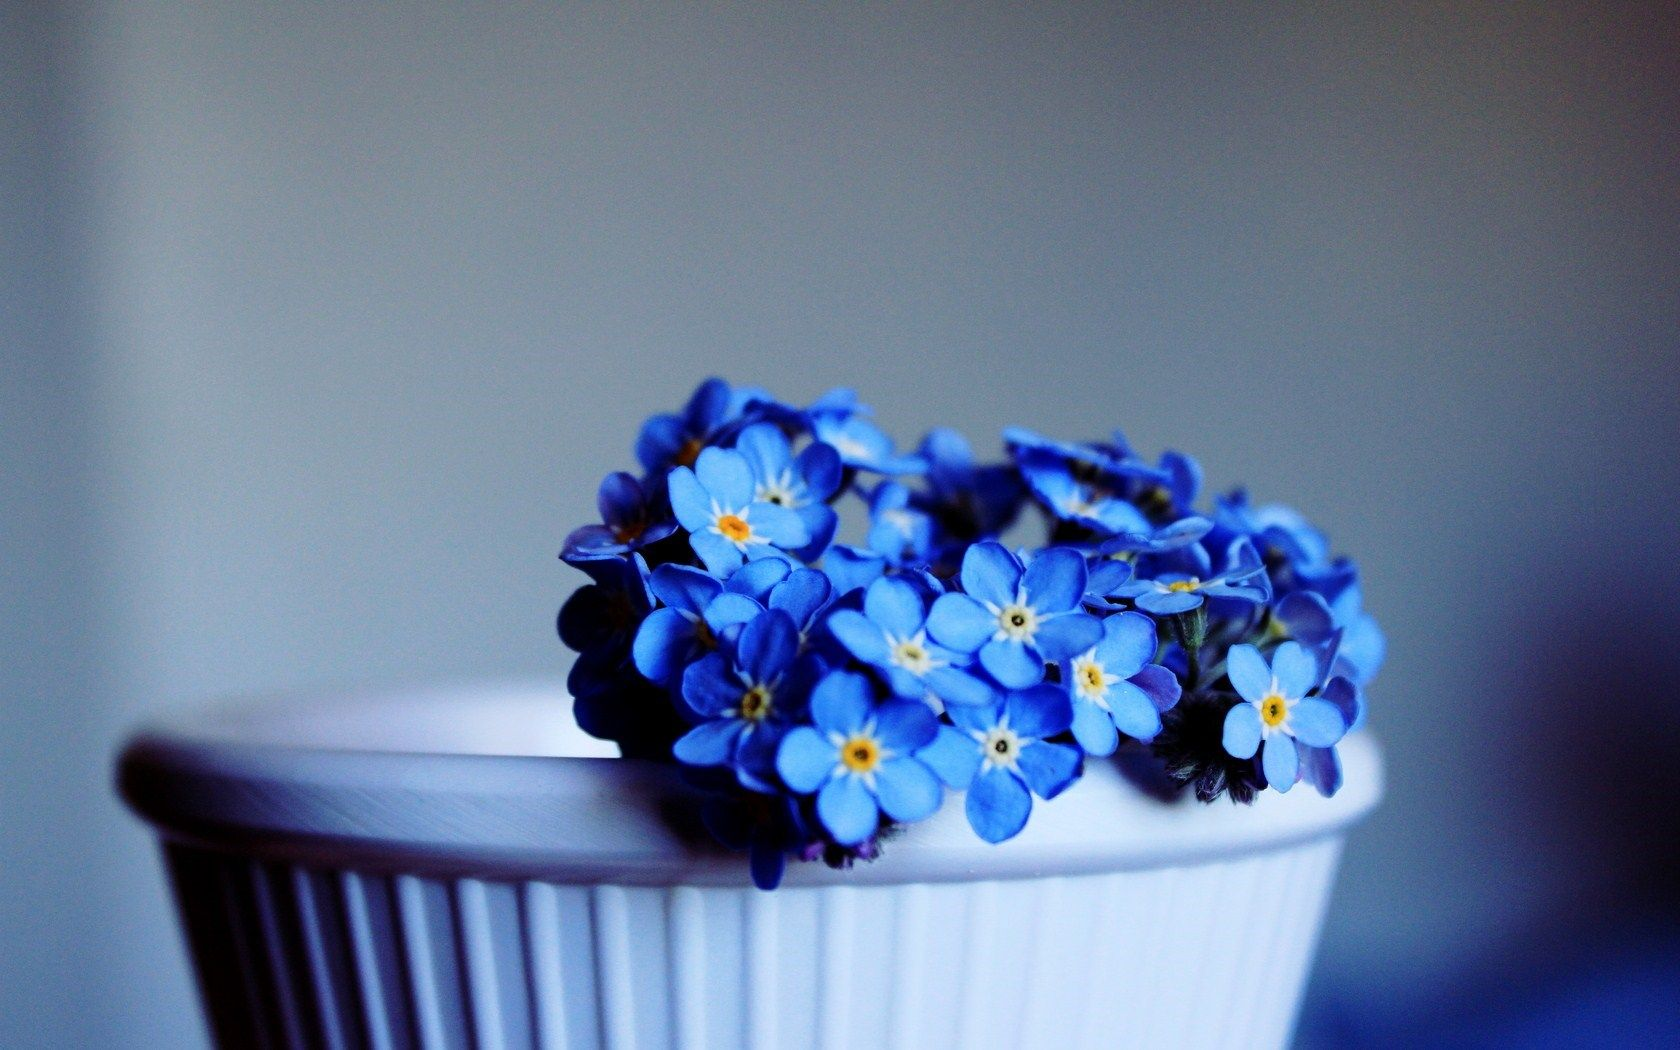 Forget Me Not Blue Flowers Hd Wallpaper Freehdwalls Wallpaper